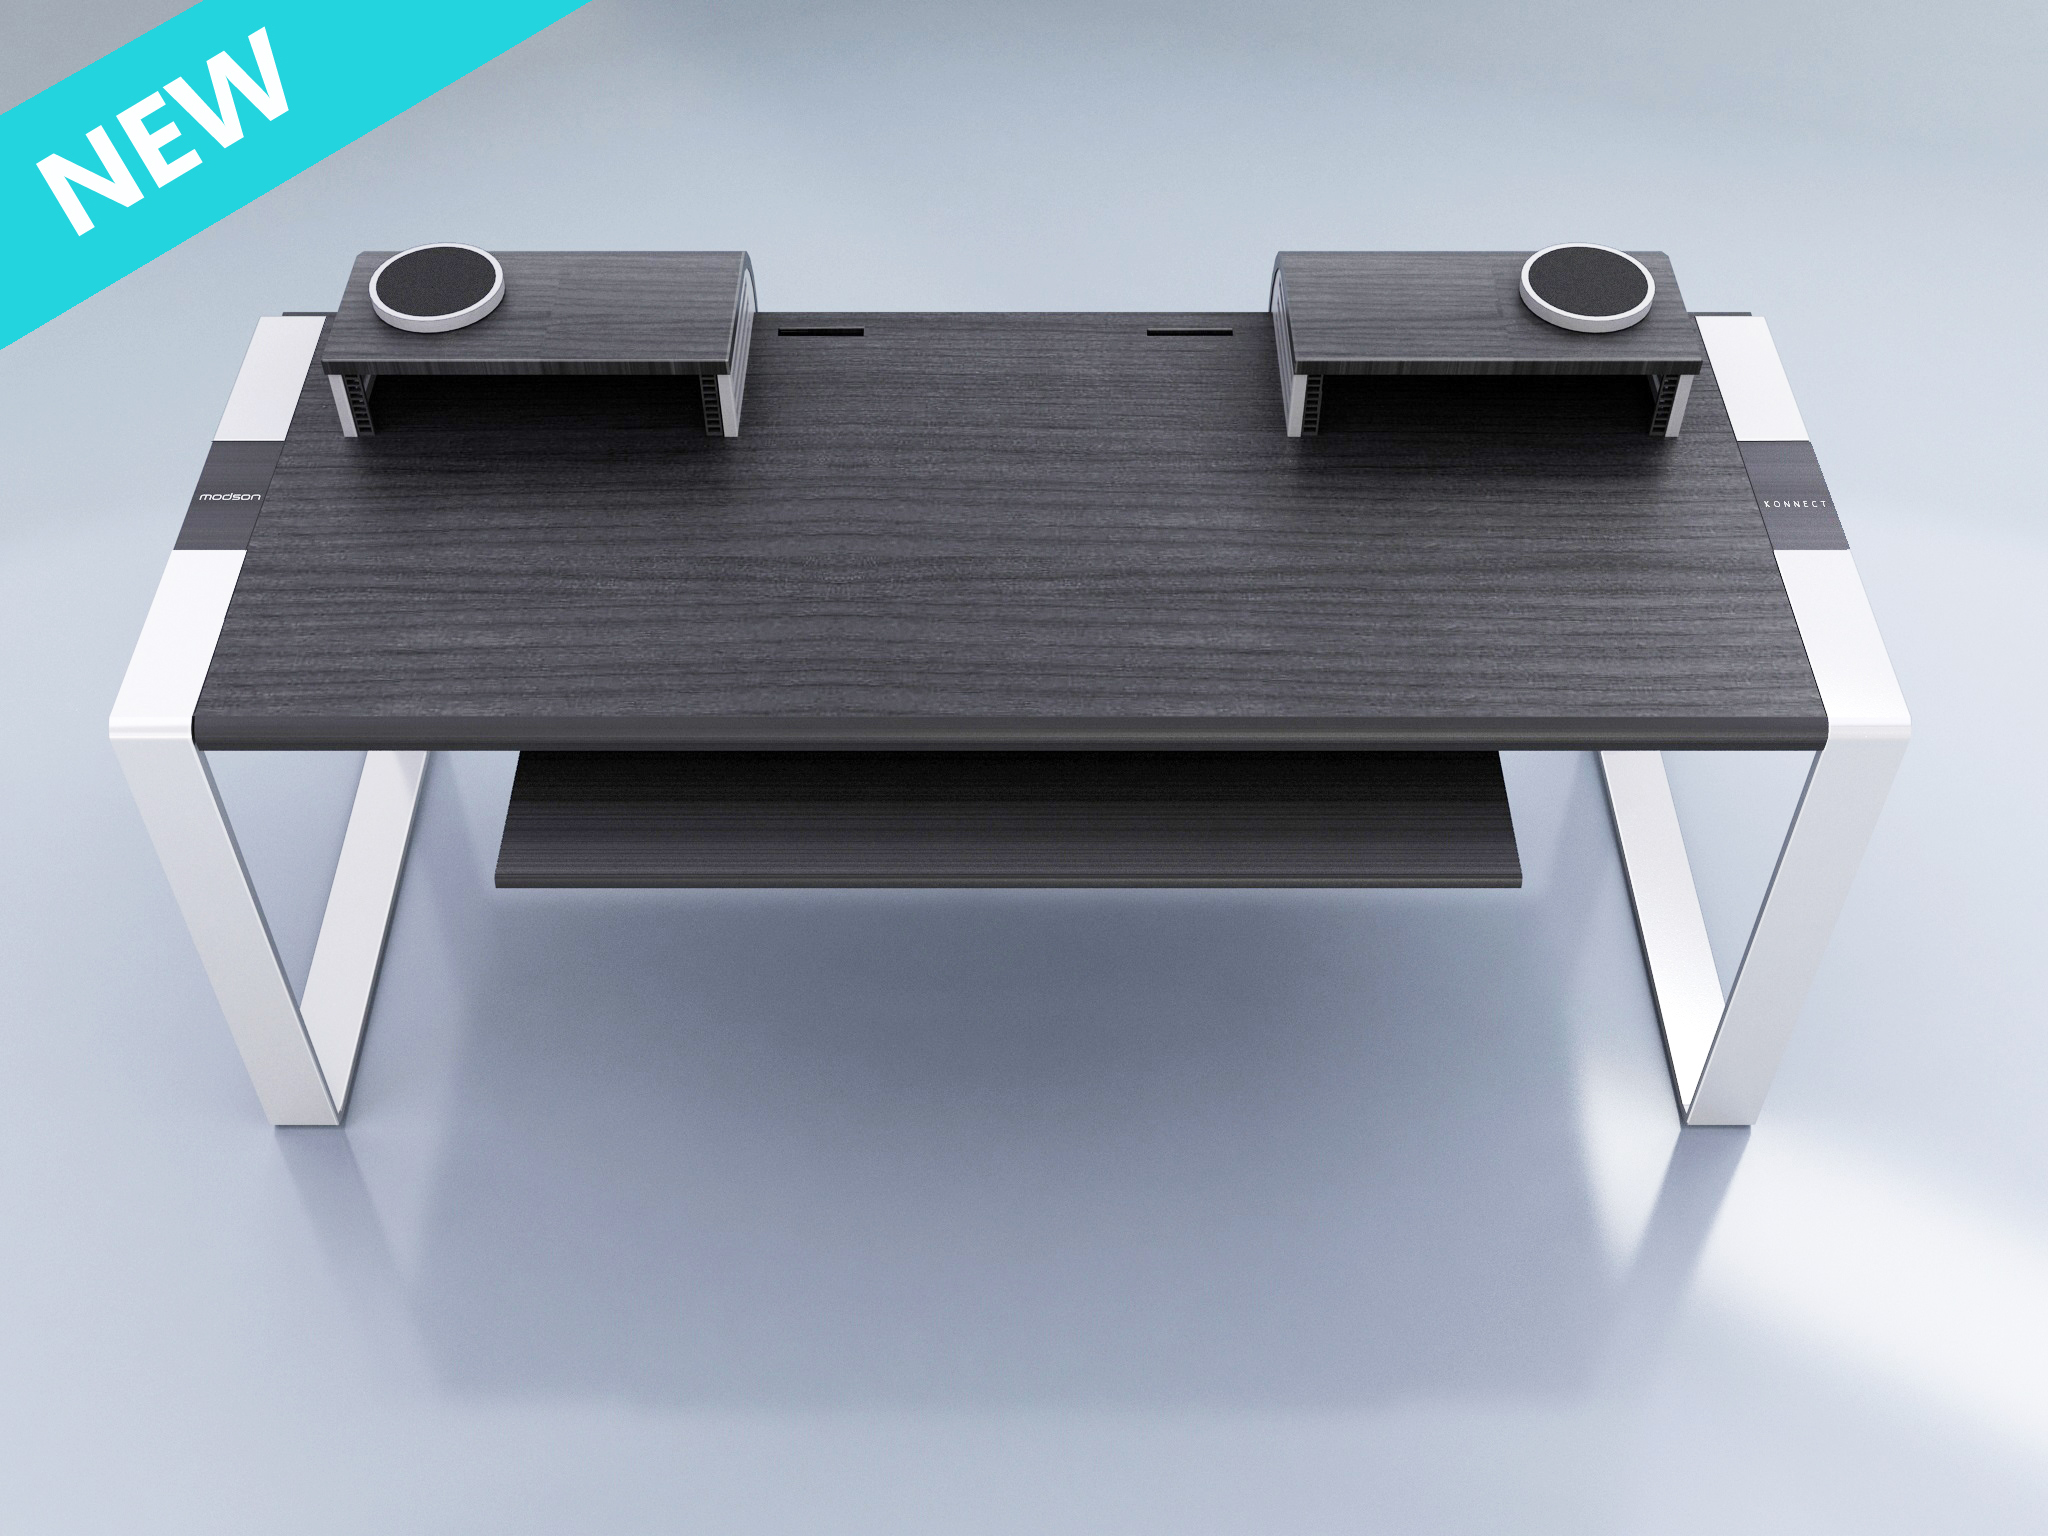 STUDIO FURNITURE. Konnect, A Desk For Producer And Musician